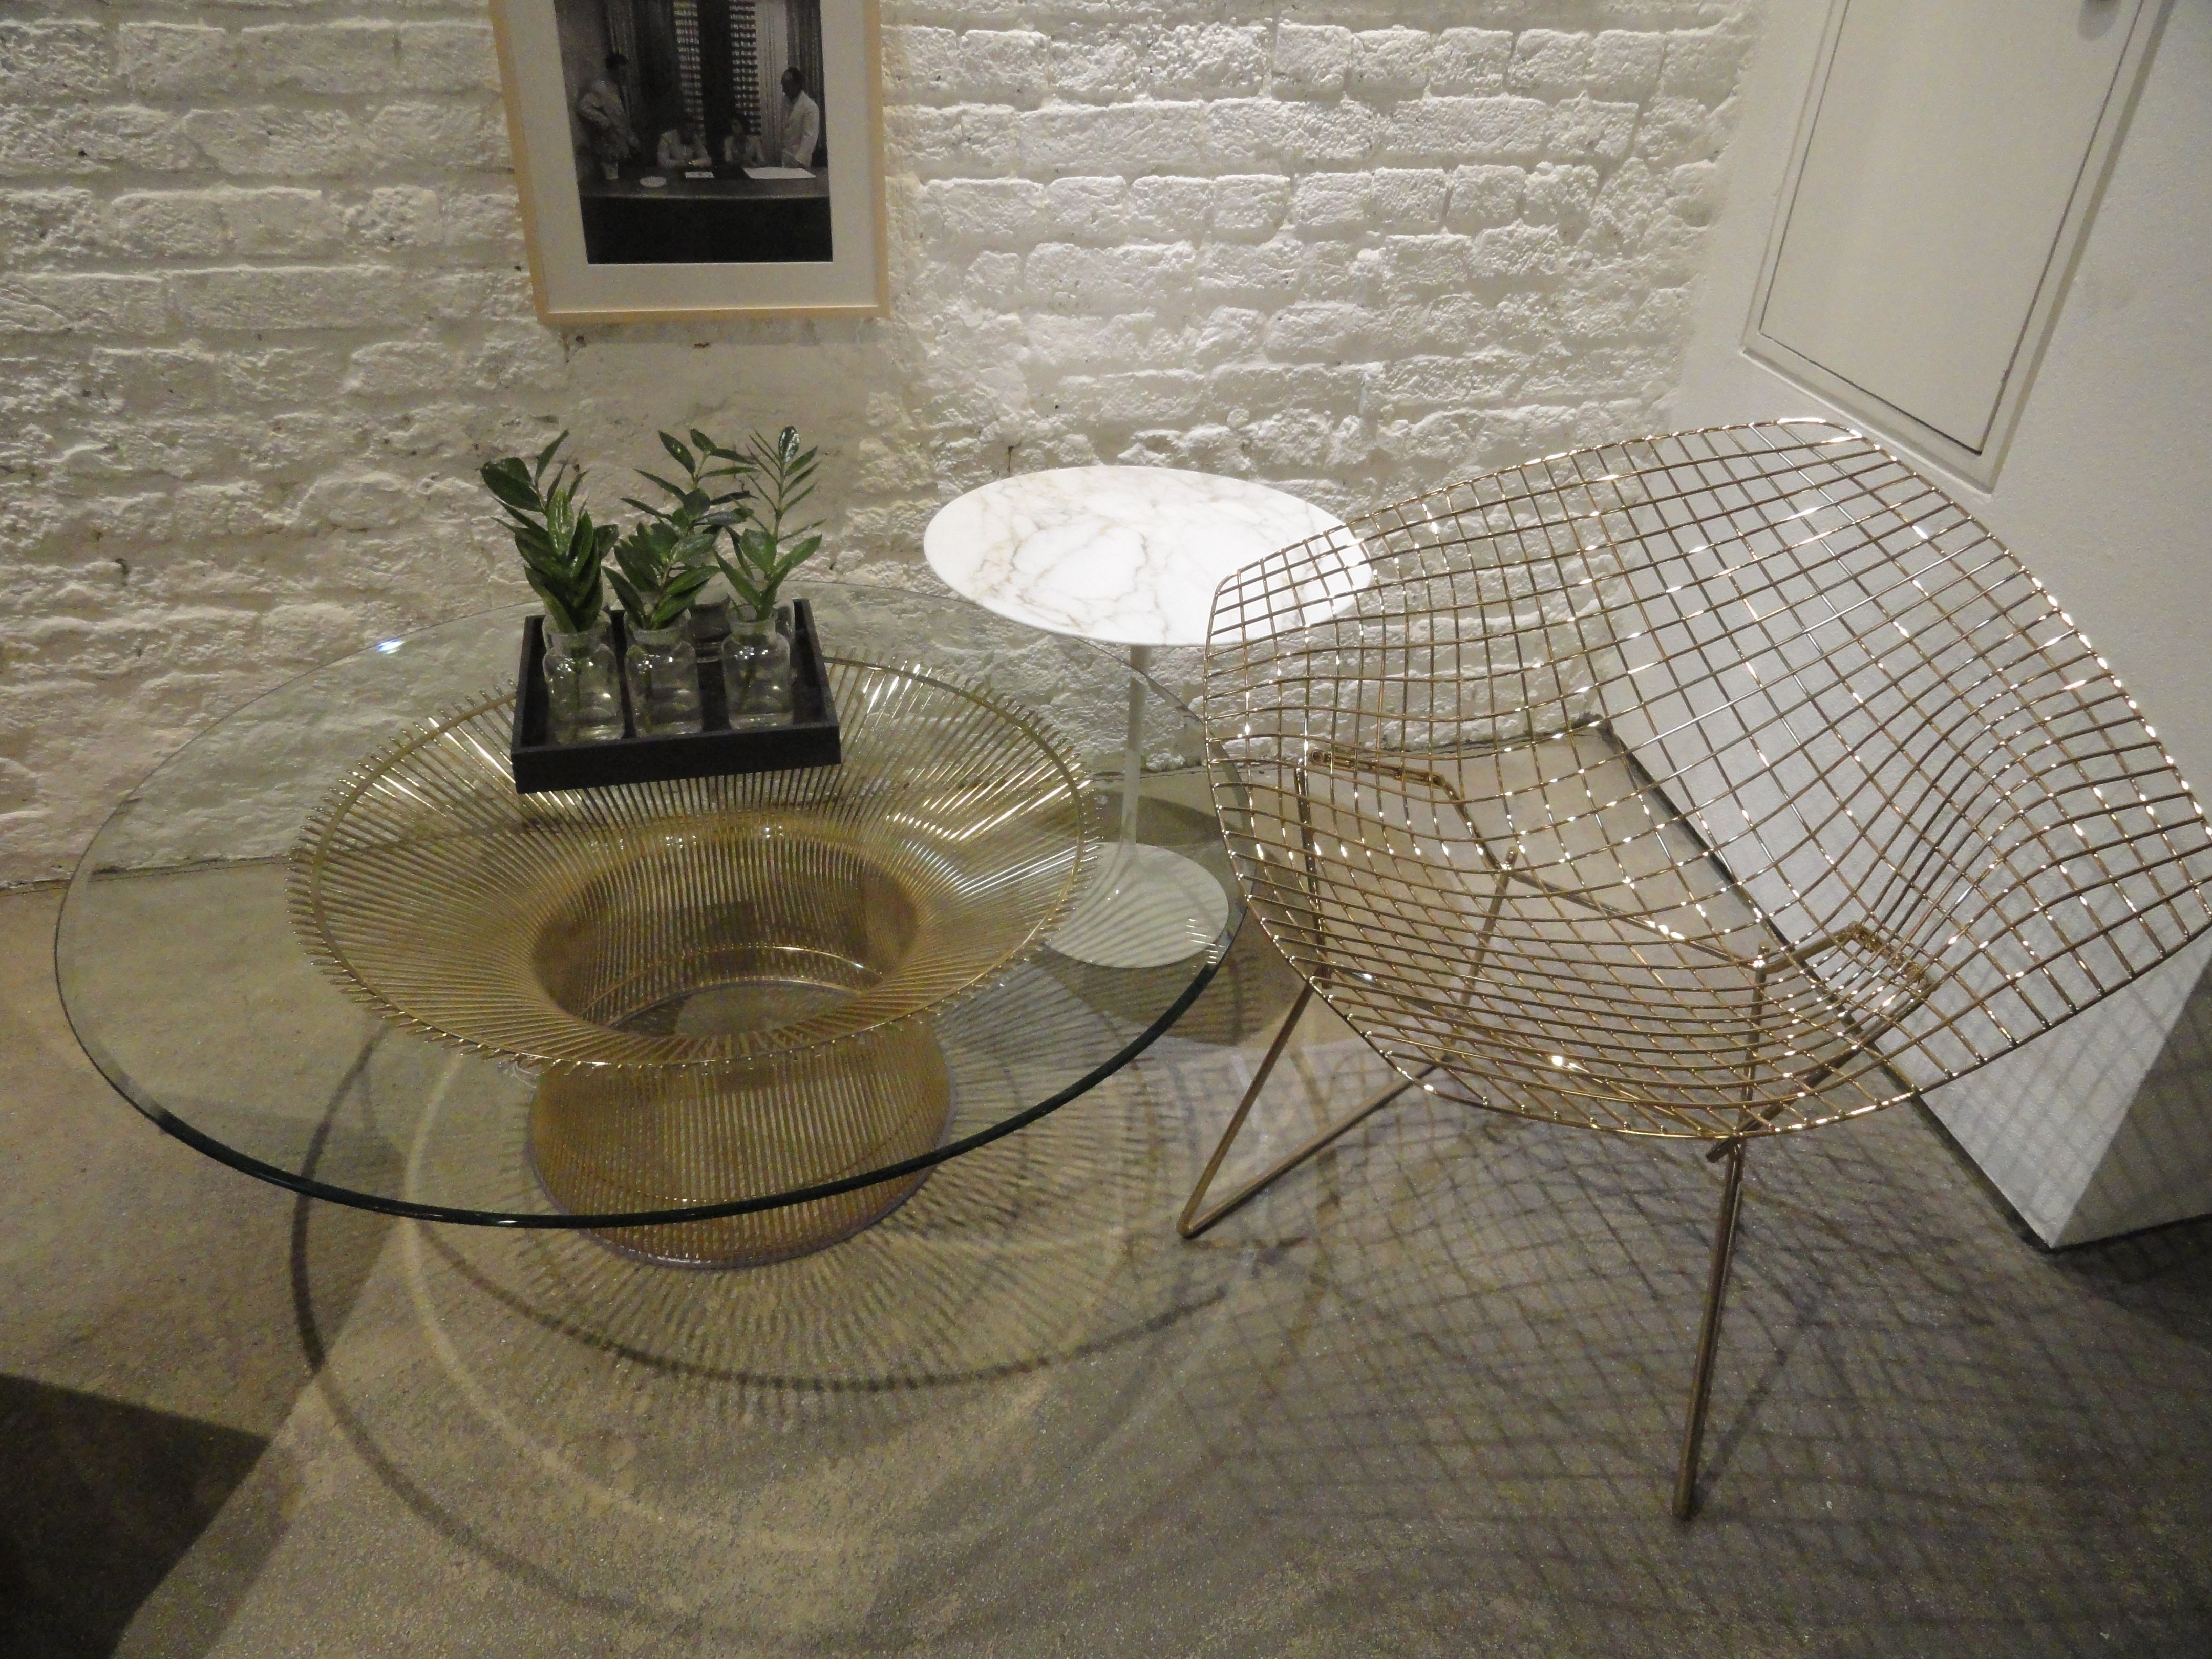 It was great to see the 18k golden Bertoid Diamond Chair at @Knoll reception during @cdwfestival #CDW2016